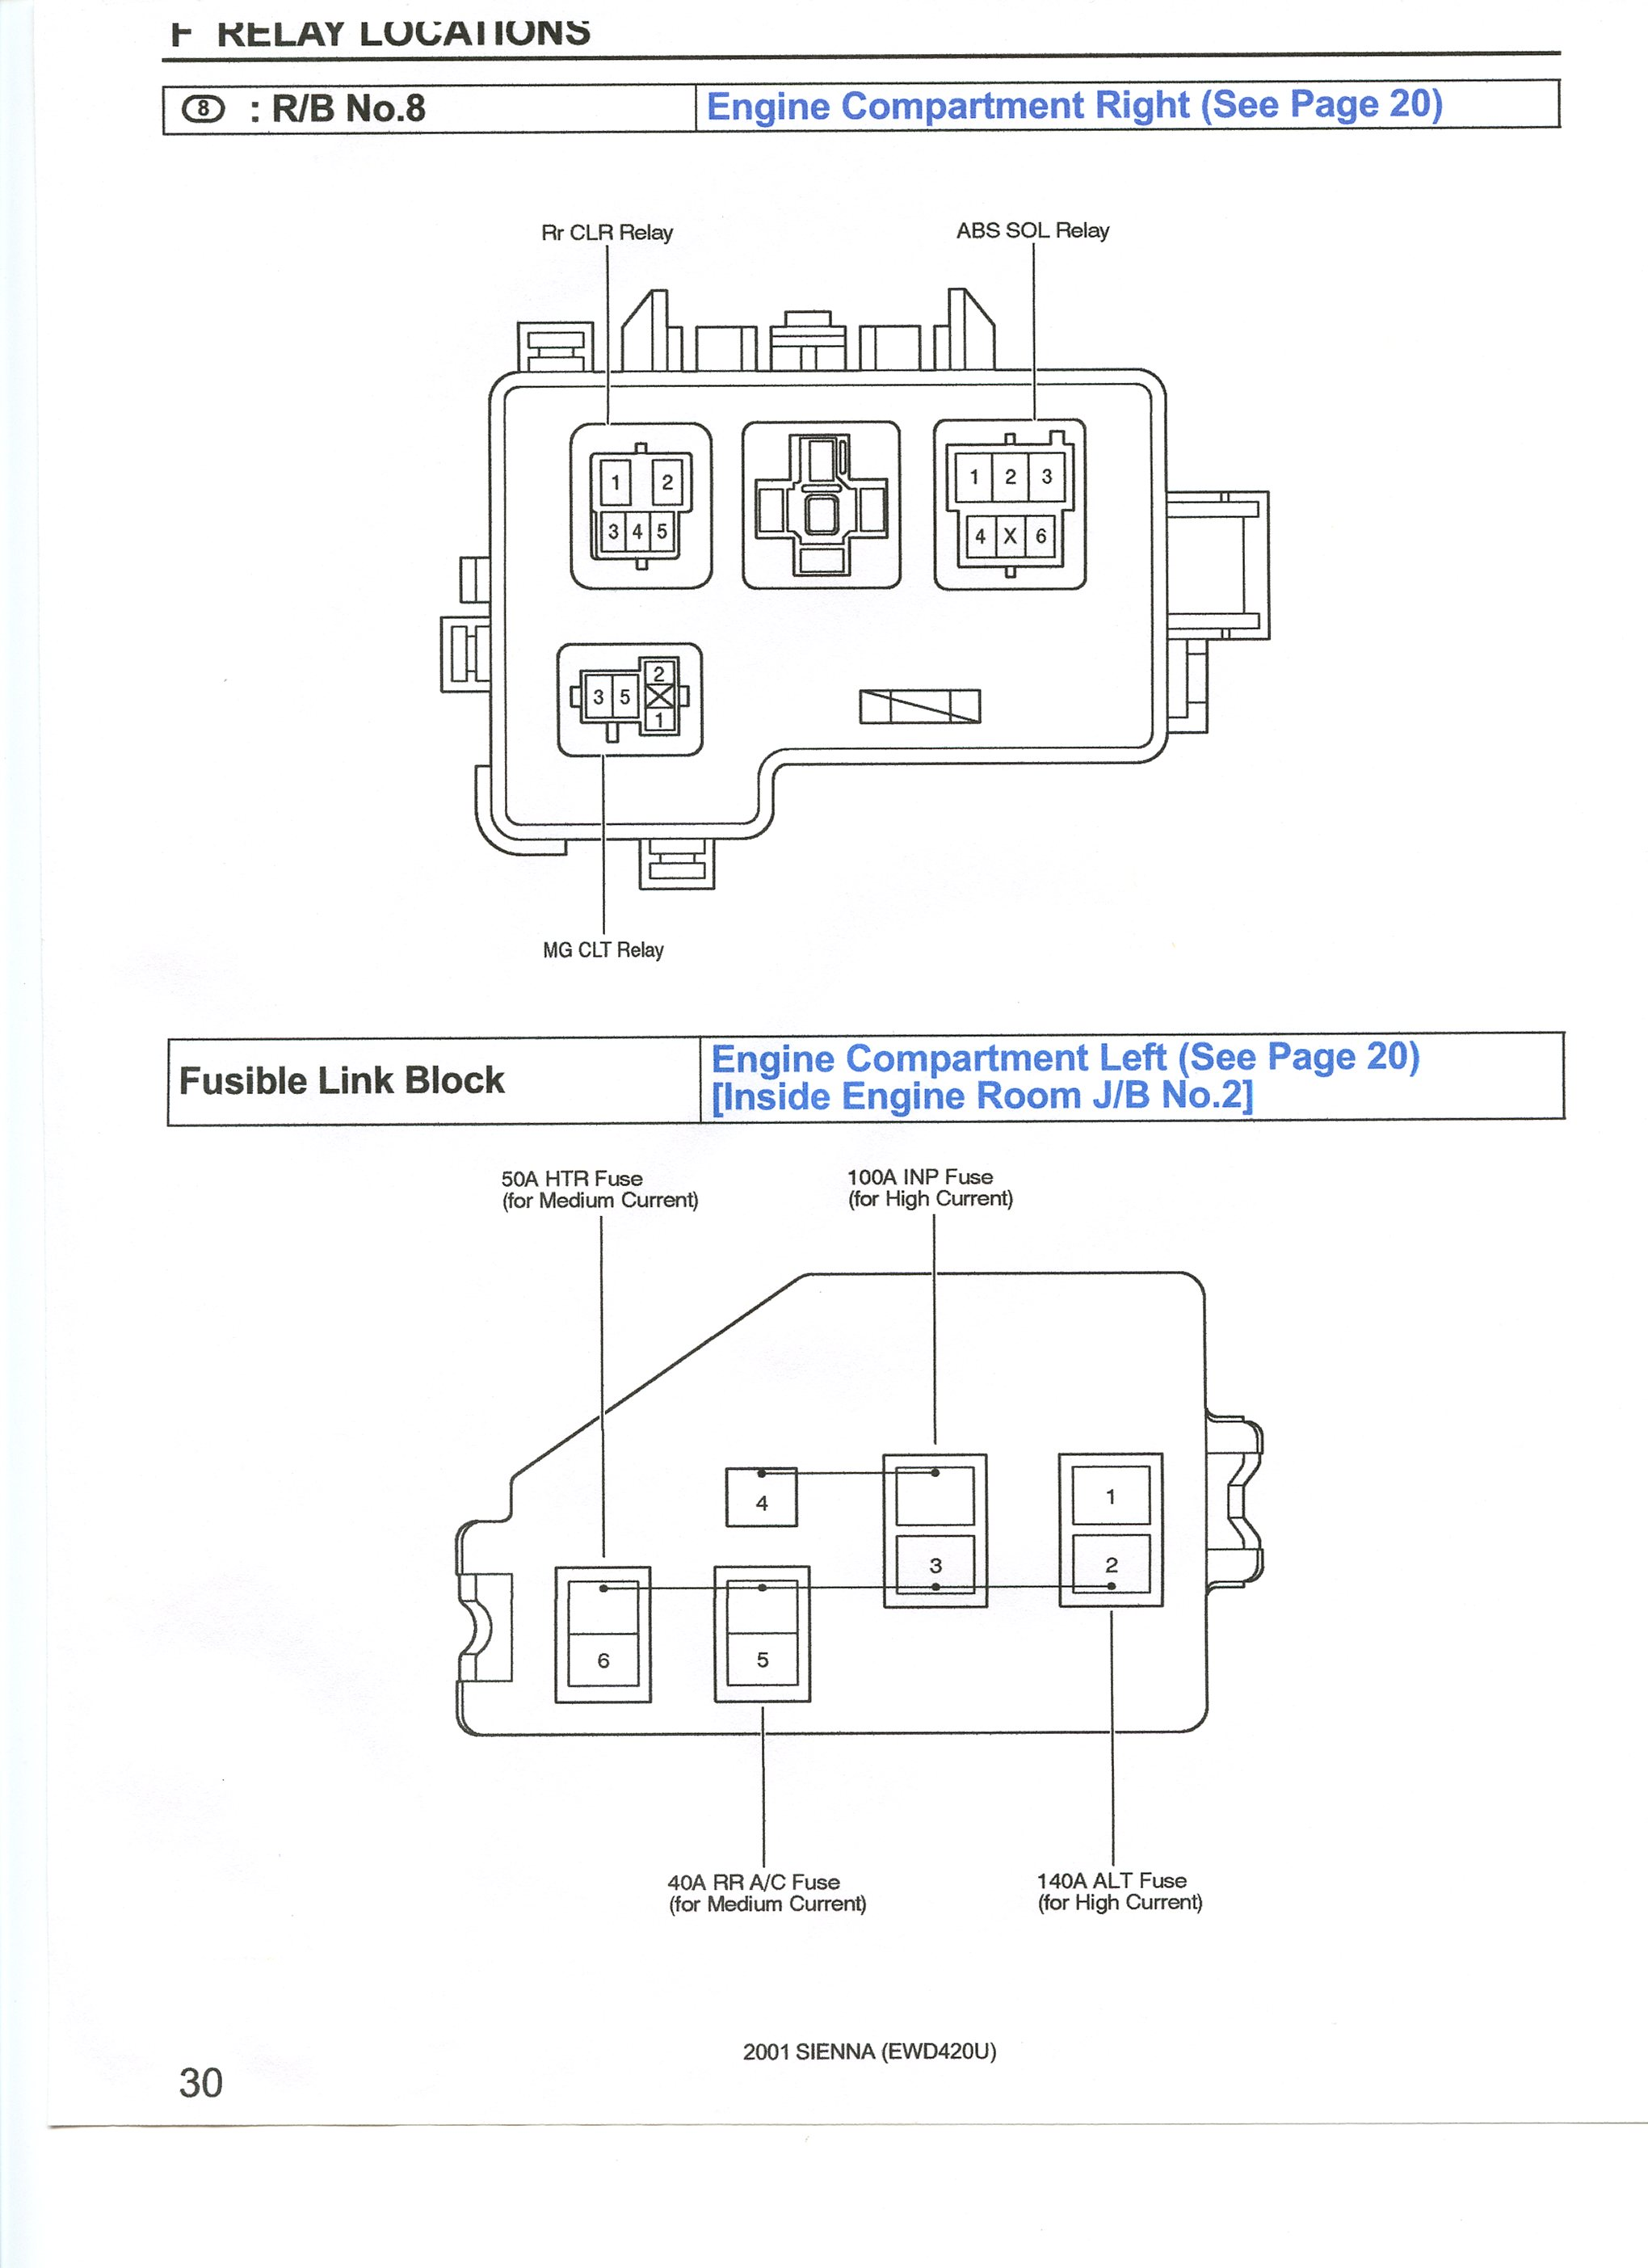 2012 09 23_192821_img116 diagrams 30372189 rr wiring diagram 2004 2005 cbr 600 rr wiring 2014 toyota sienna wiring diagram at panicattacktreatment.co